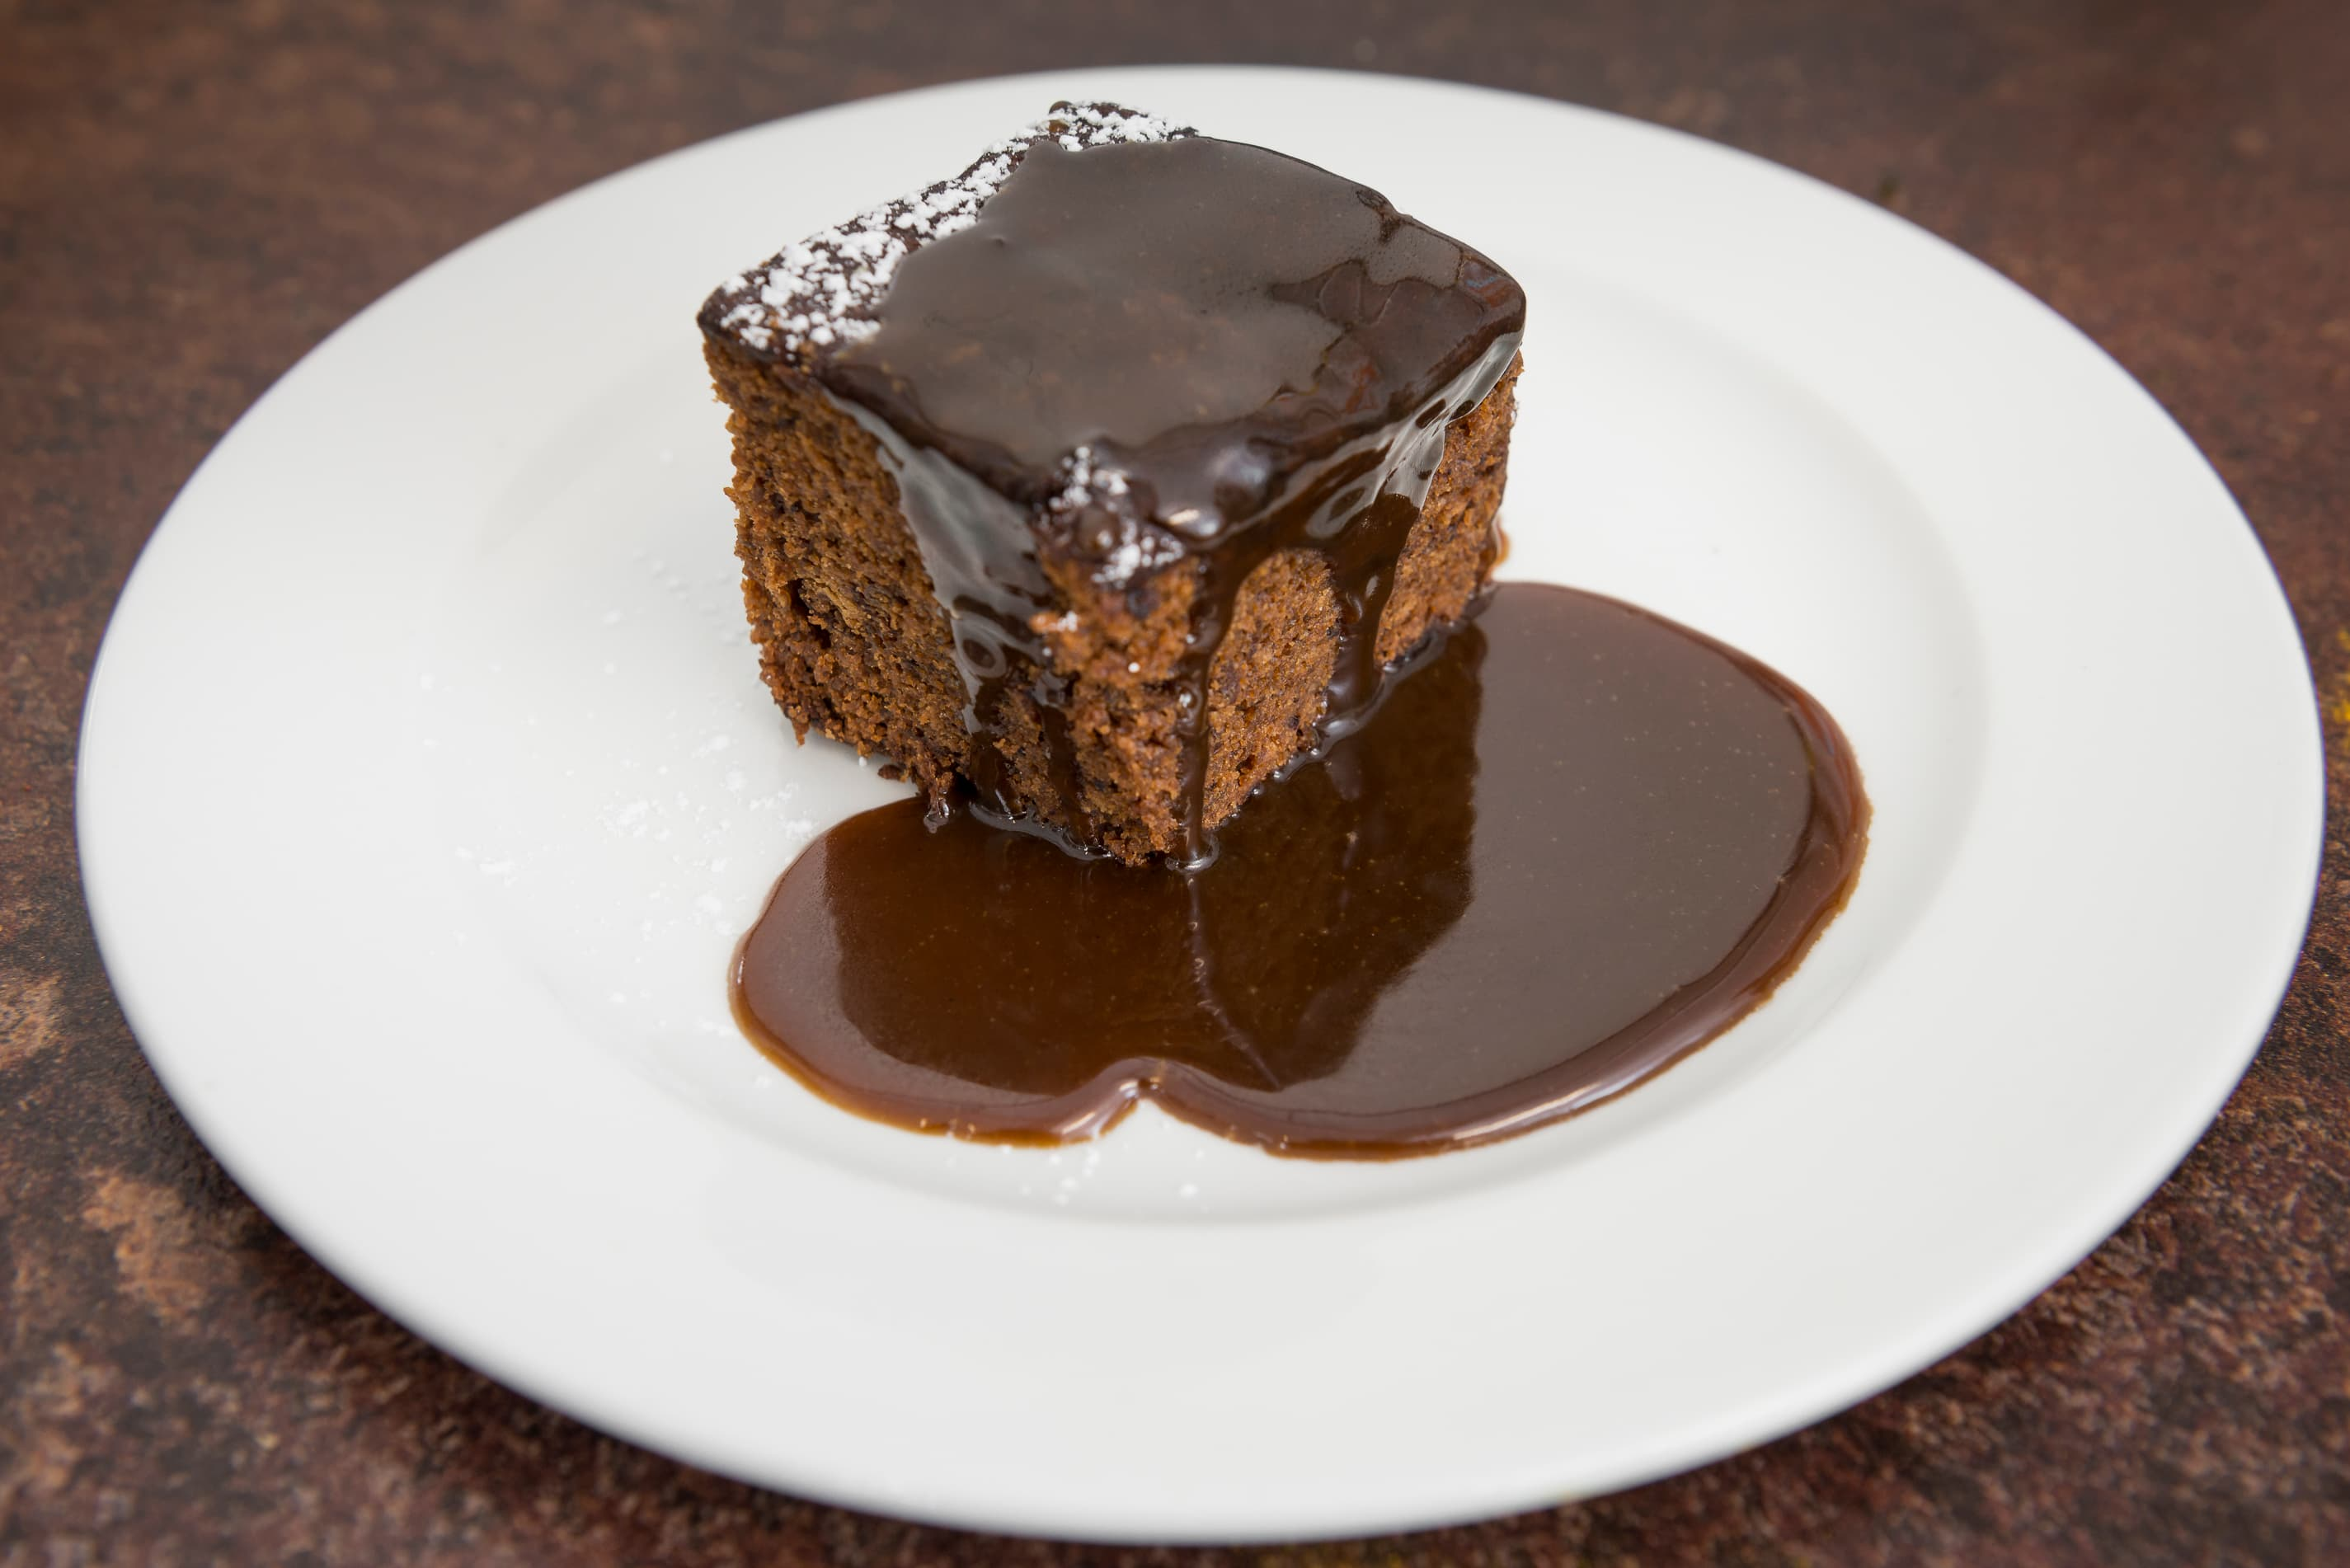 Sticky toffee pudding with toffee sauce (V)